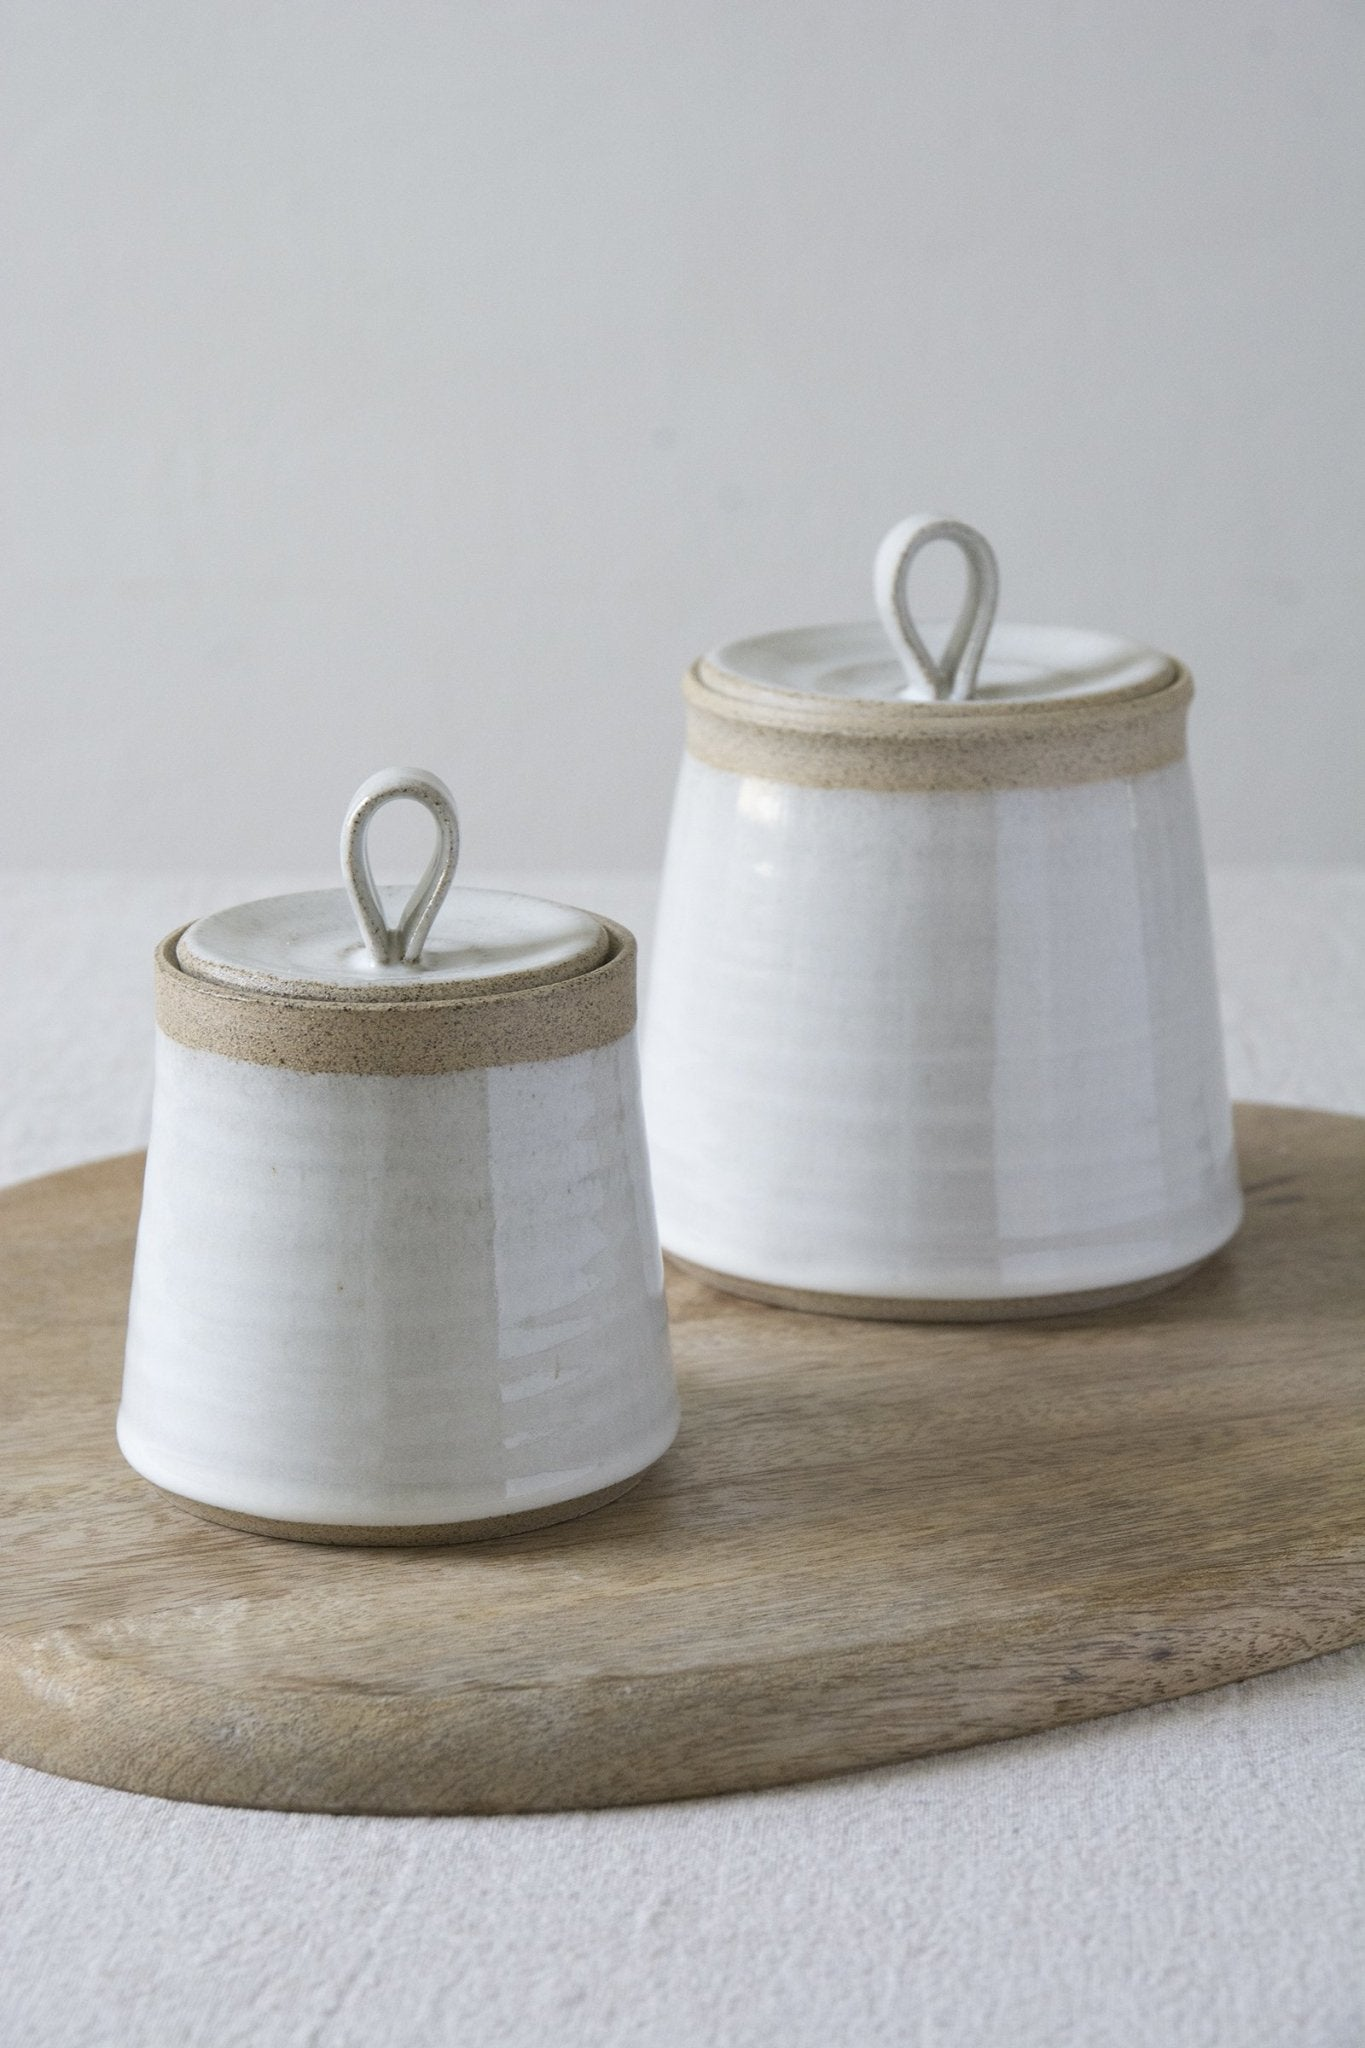 Set of 2 Ceramic Canisters - Mad About Pottery- canister